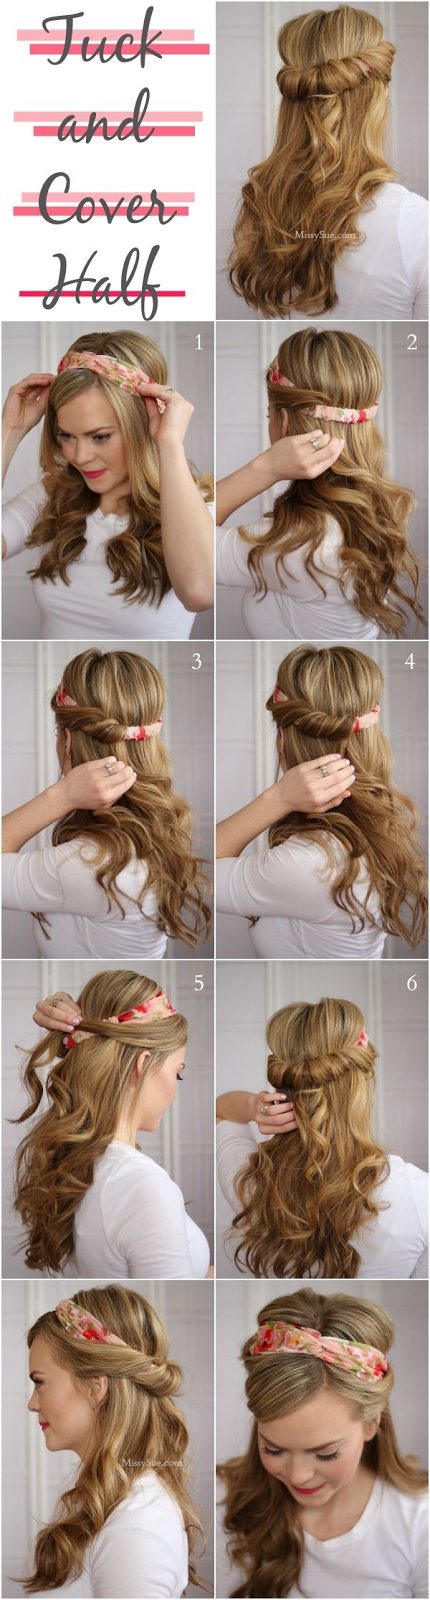 Tuck and Cover Hair Tutorial